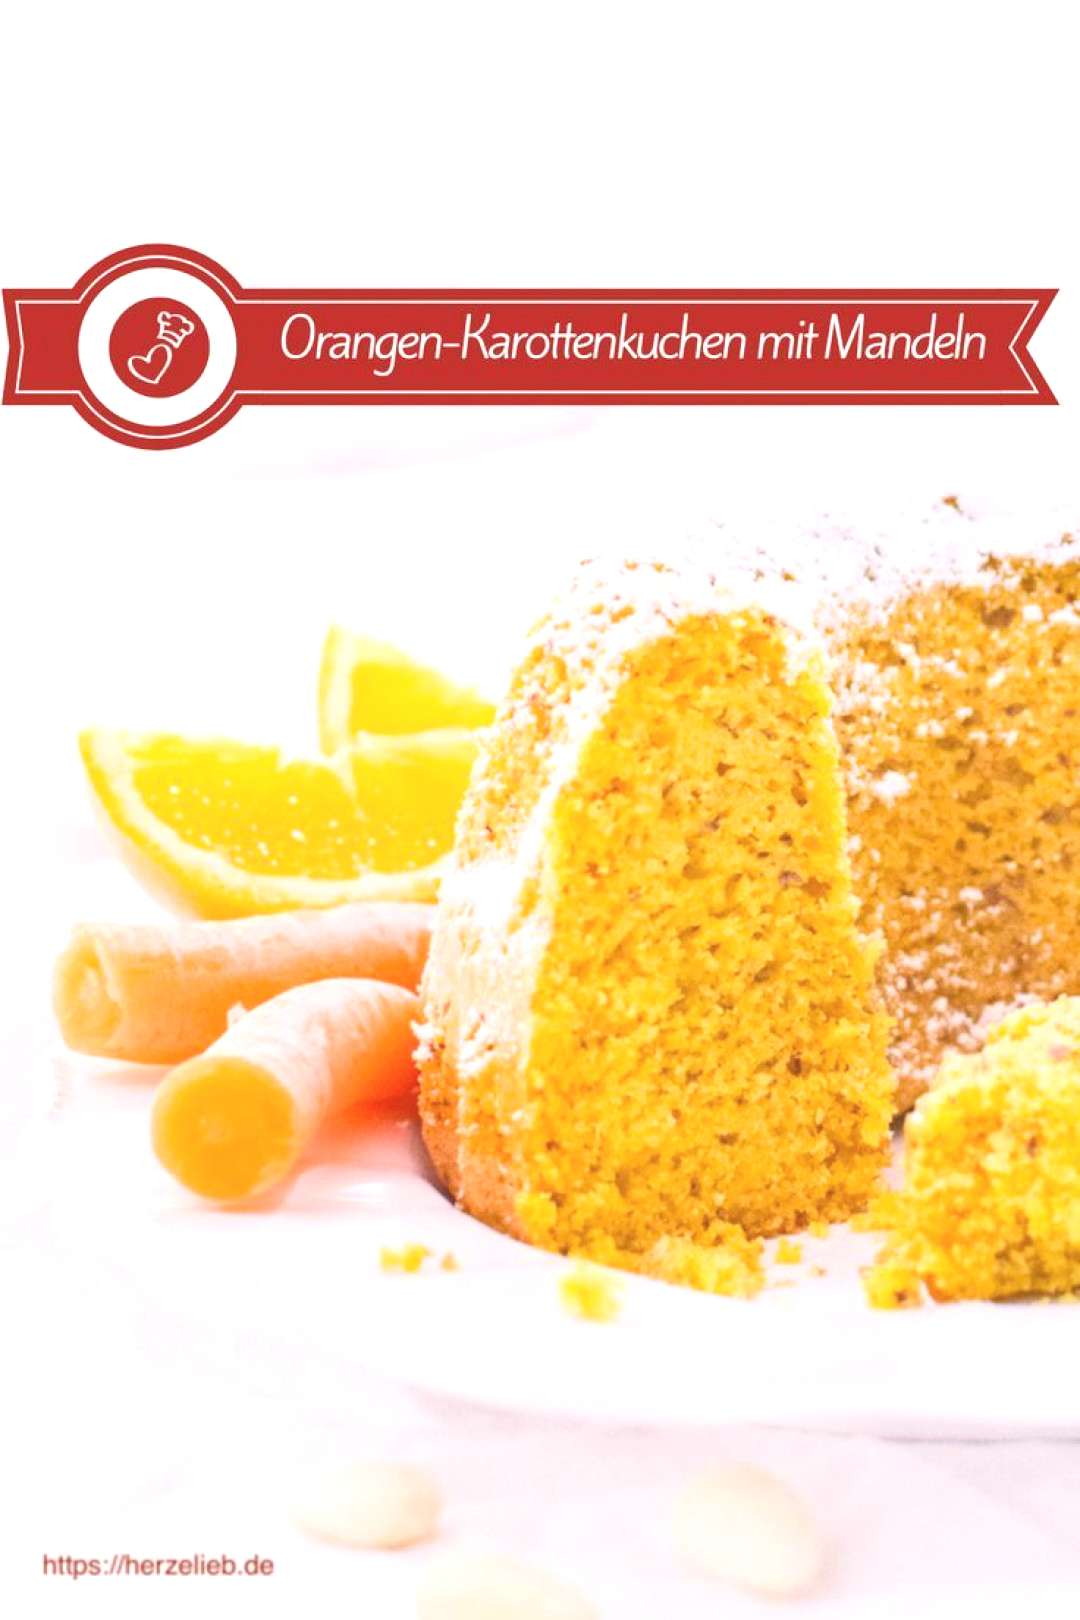 Cake recipes, orange recipes: Recipe for a super juicy carrot cake Gugelhupf from herzelieb. This G